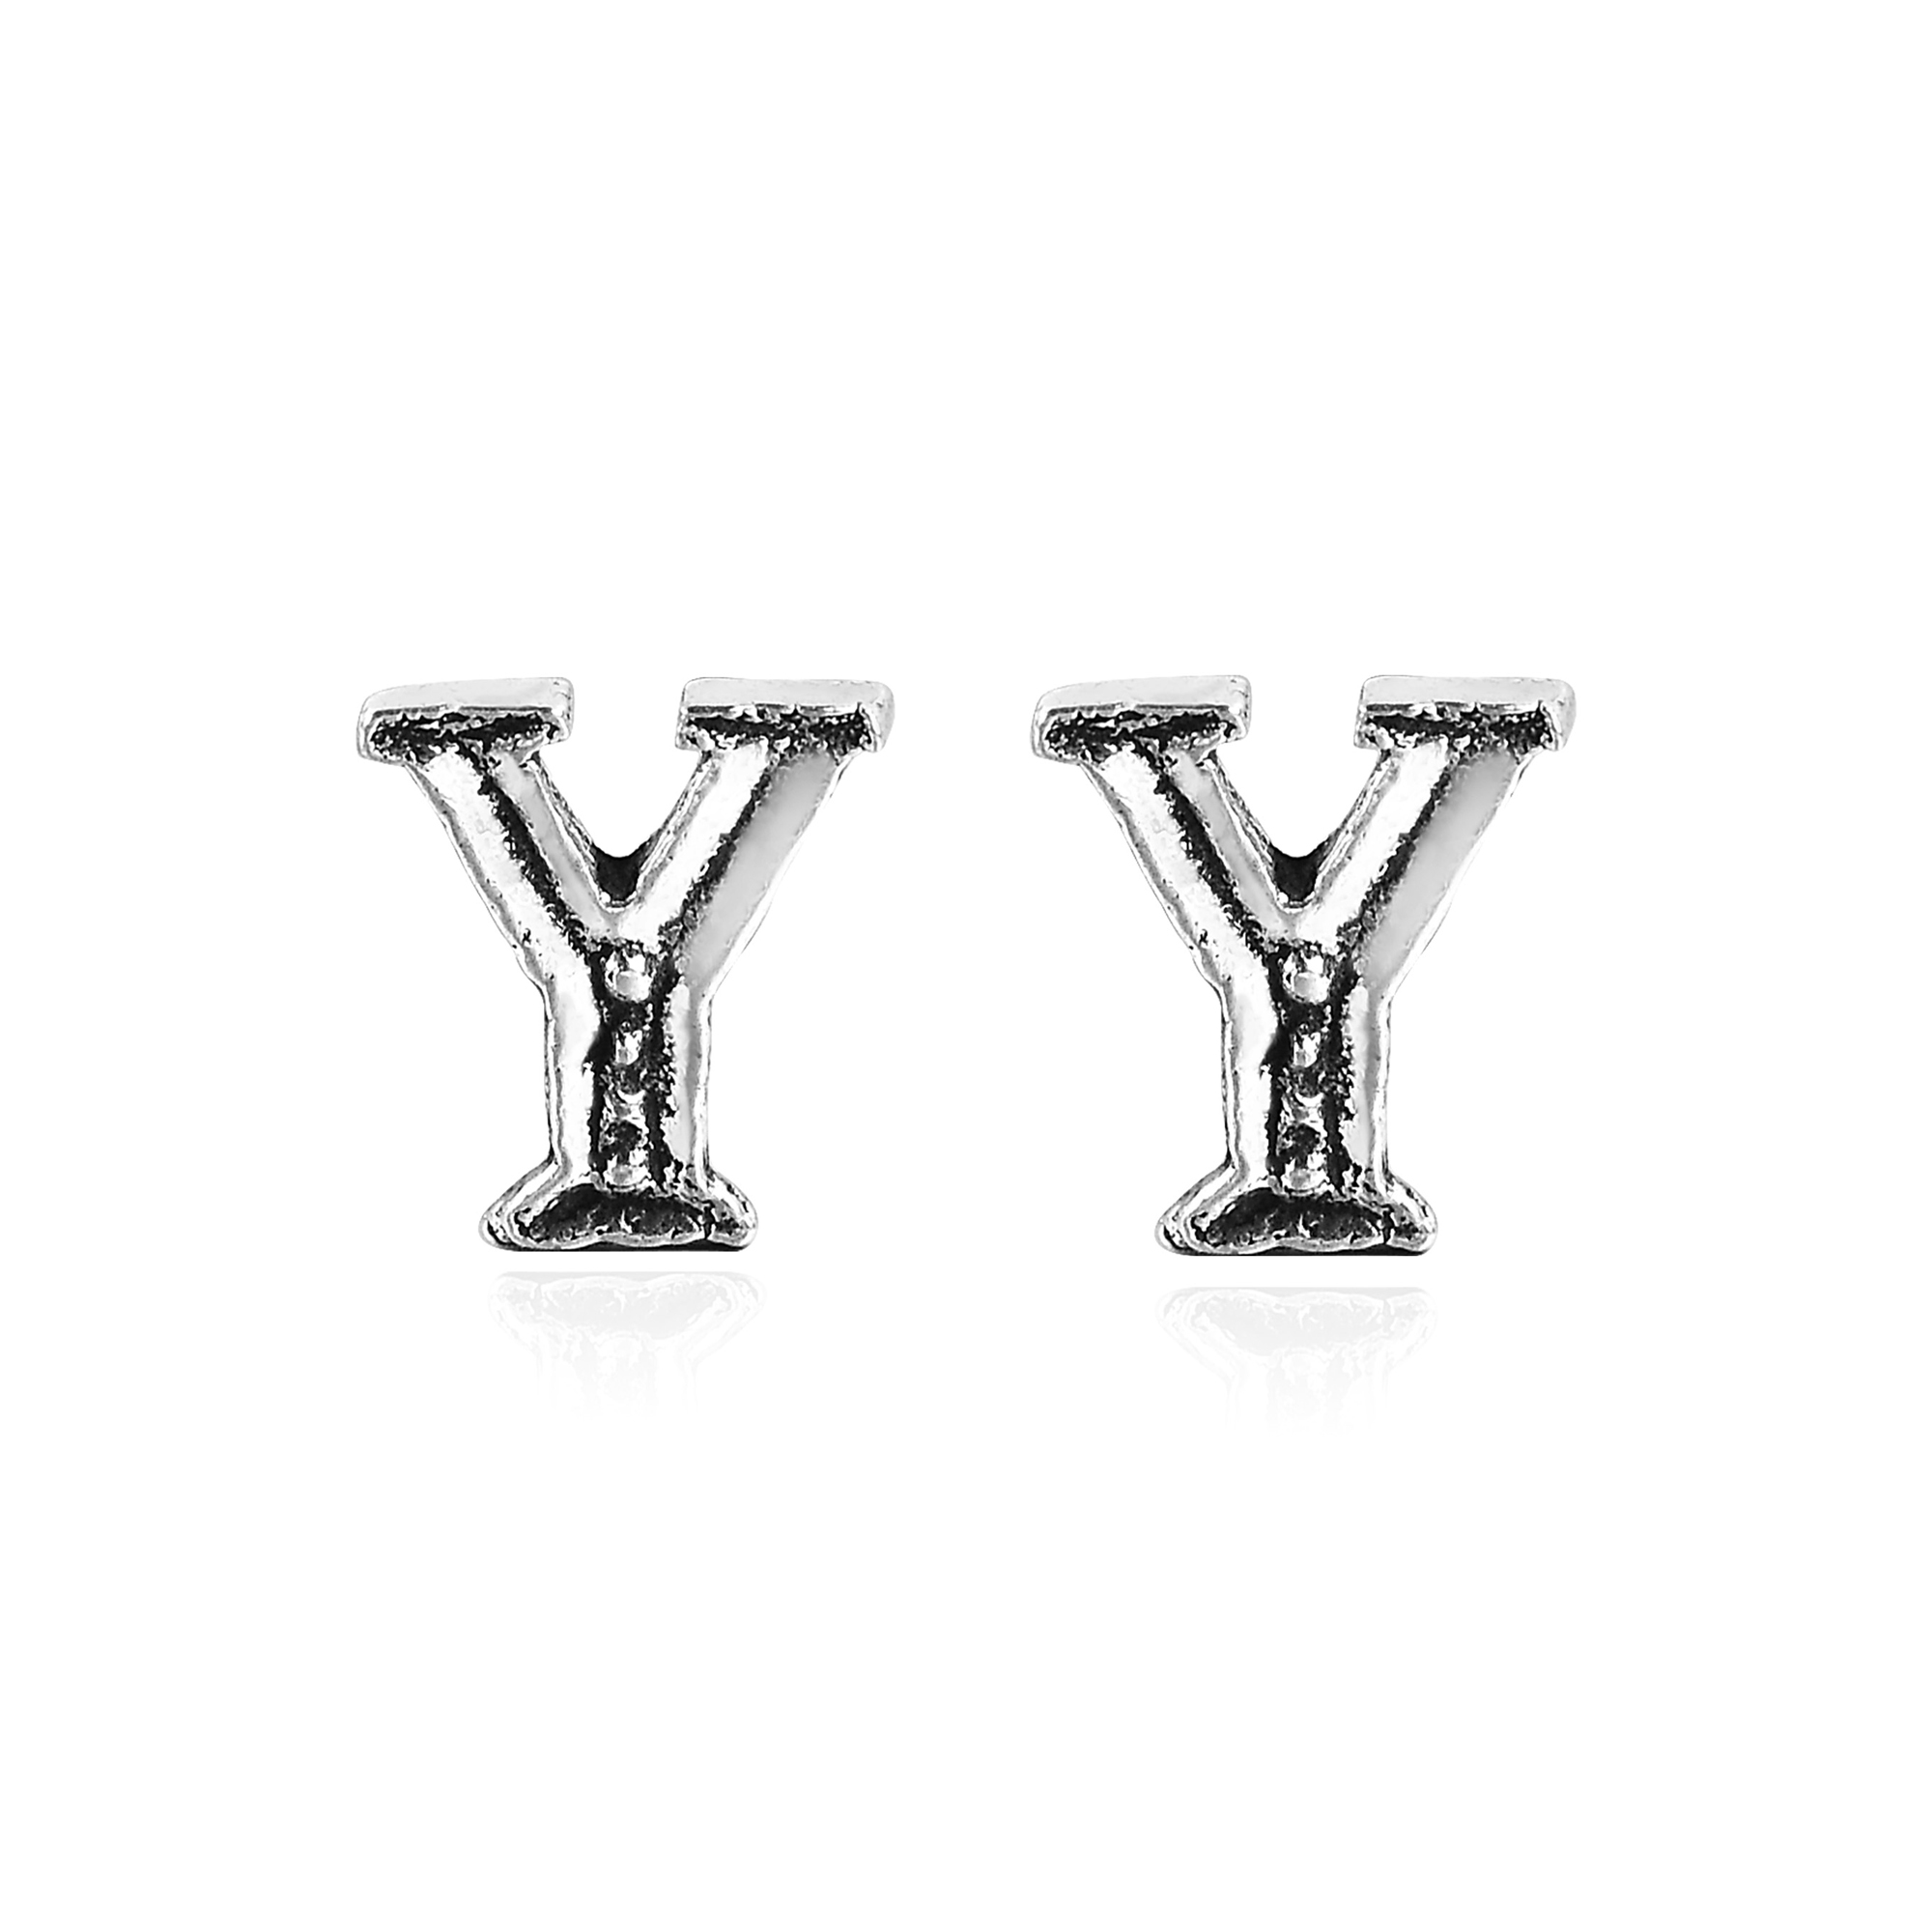 aeravida stylish alphabet m pe every a sterling plain pair stud these available this handmade earrings yet simple are letter silver details in cool the feature of products